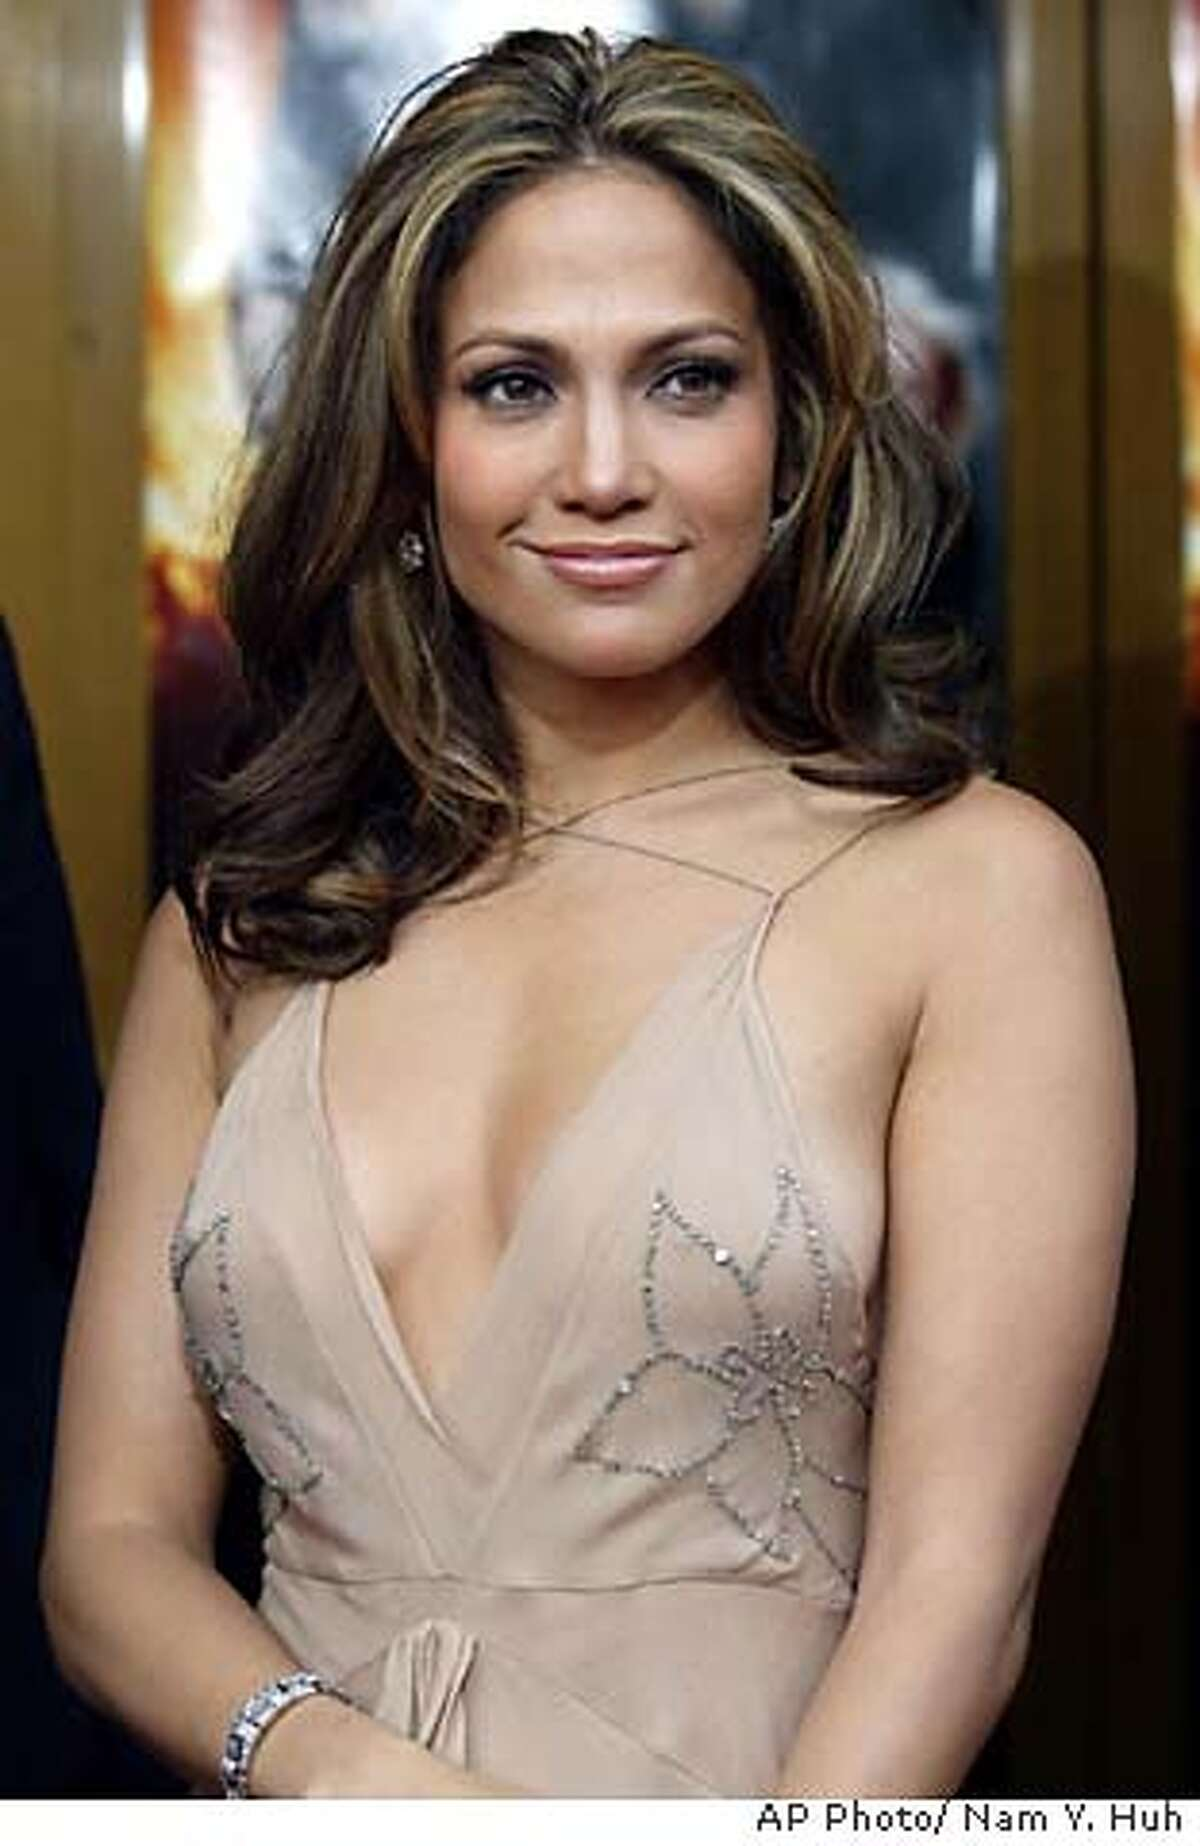 """**FILE**Actress and singer Jennifer Lopez poses for a photo as she arrives for the world premiere of Man on Fire in this April 18, 2004 file photo, in Los Angeles. In early June, Lopez reportedly married singer Marc Anthony in a small ceremony at her Beverly Hills, Calif., home. All she'll say about Anthony is, """"We have a great working relationship. I have to keep my work and my personal life separate. Otherwise it gets blurry and it gets messy.""""(AP Photo/ Nam Y. Huh) FILE"""